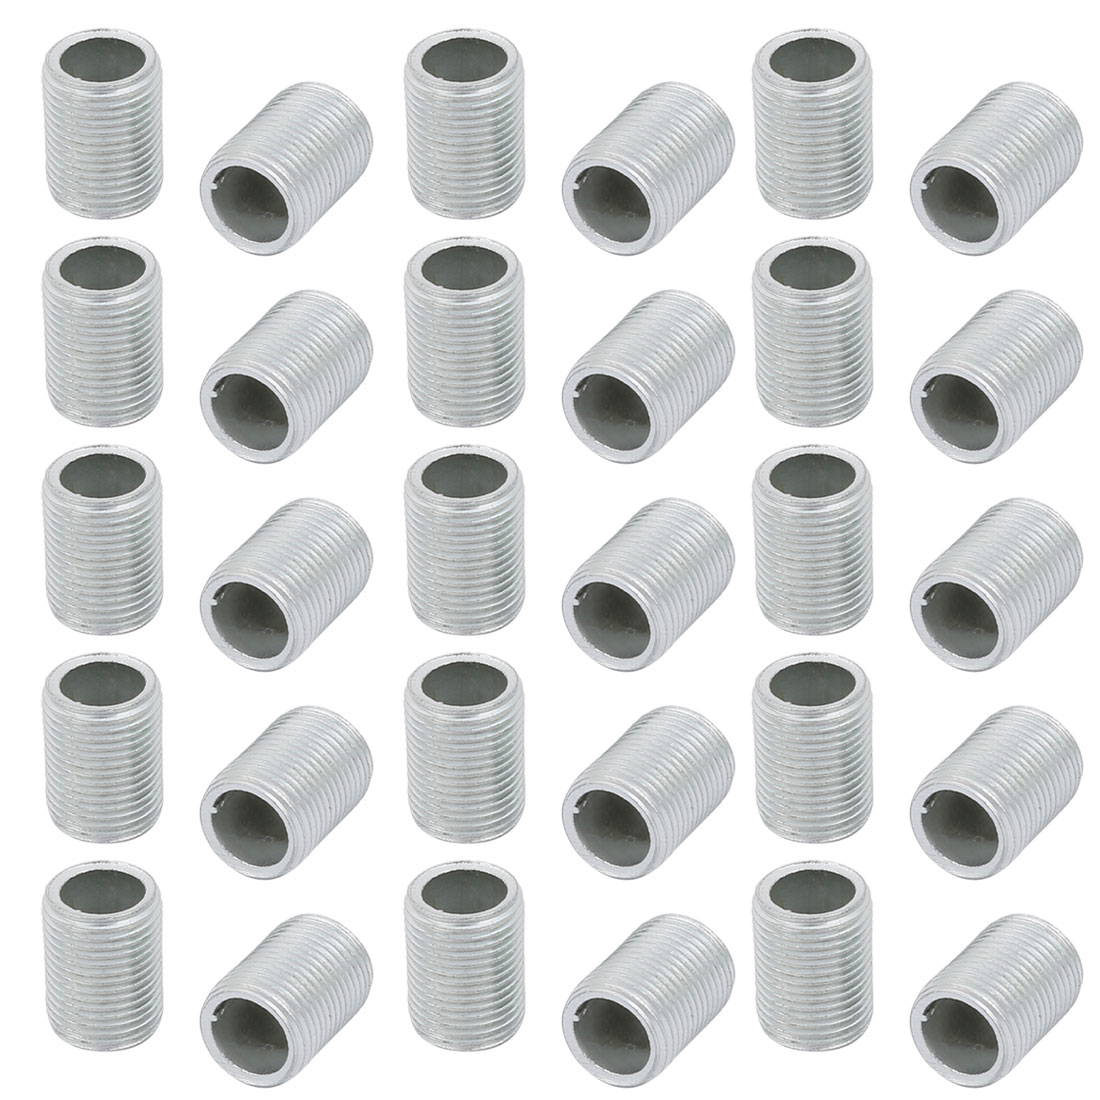 30 Pcs Metric M12 1mm Pitch Thread Zinc Plated Pipe Nipple Lamp Parts 15mm Long